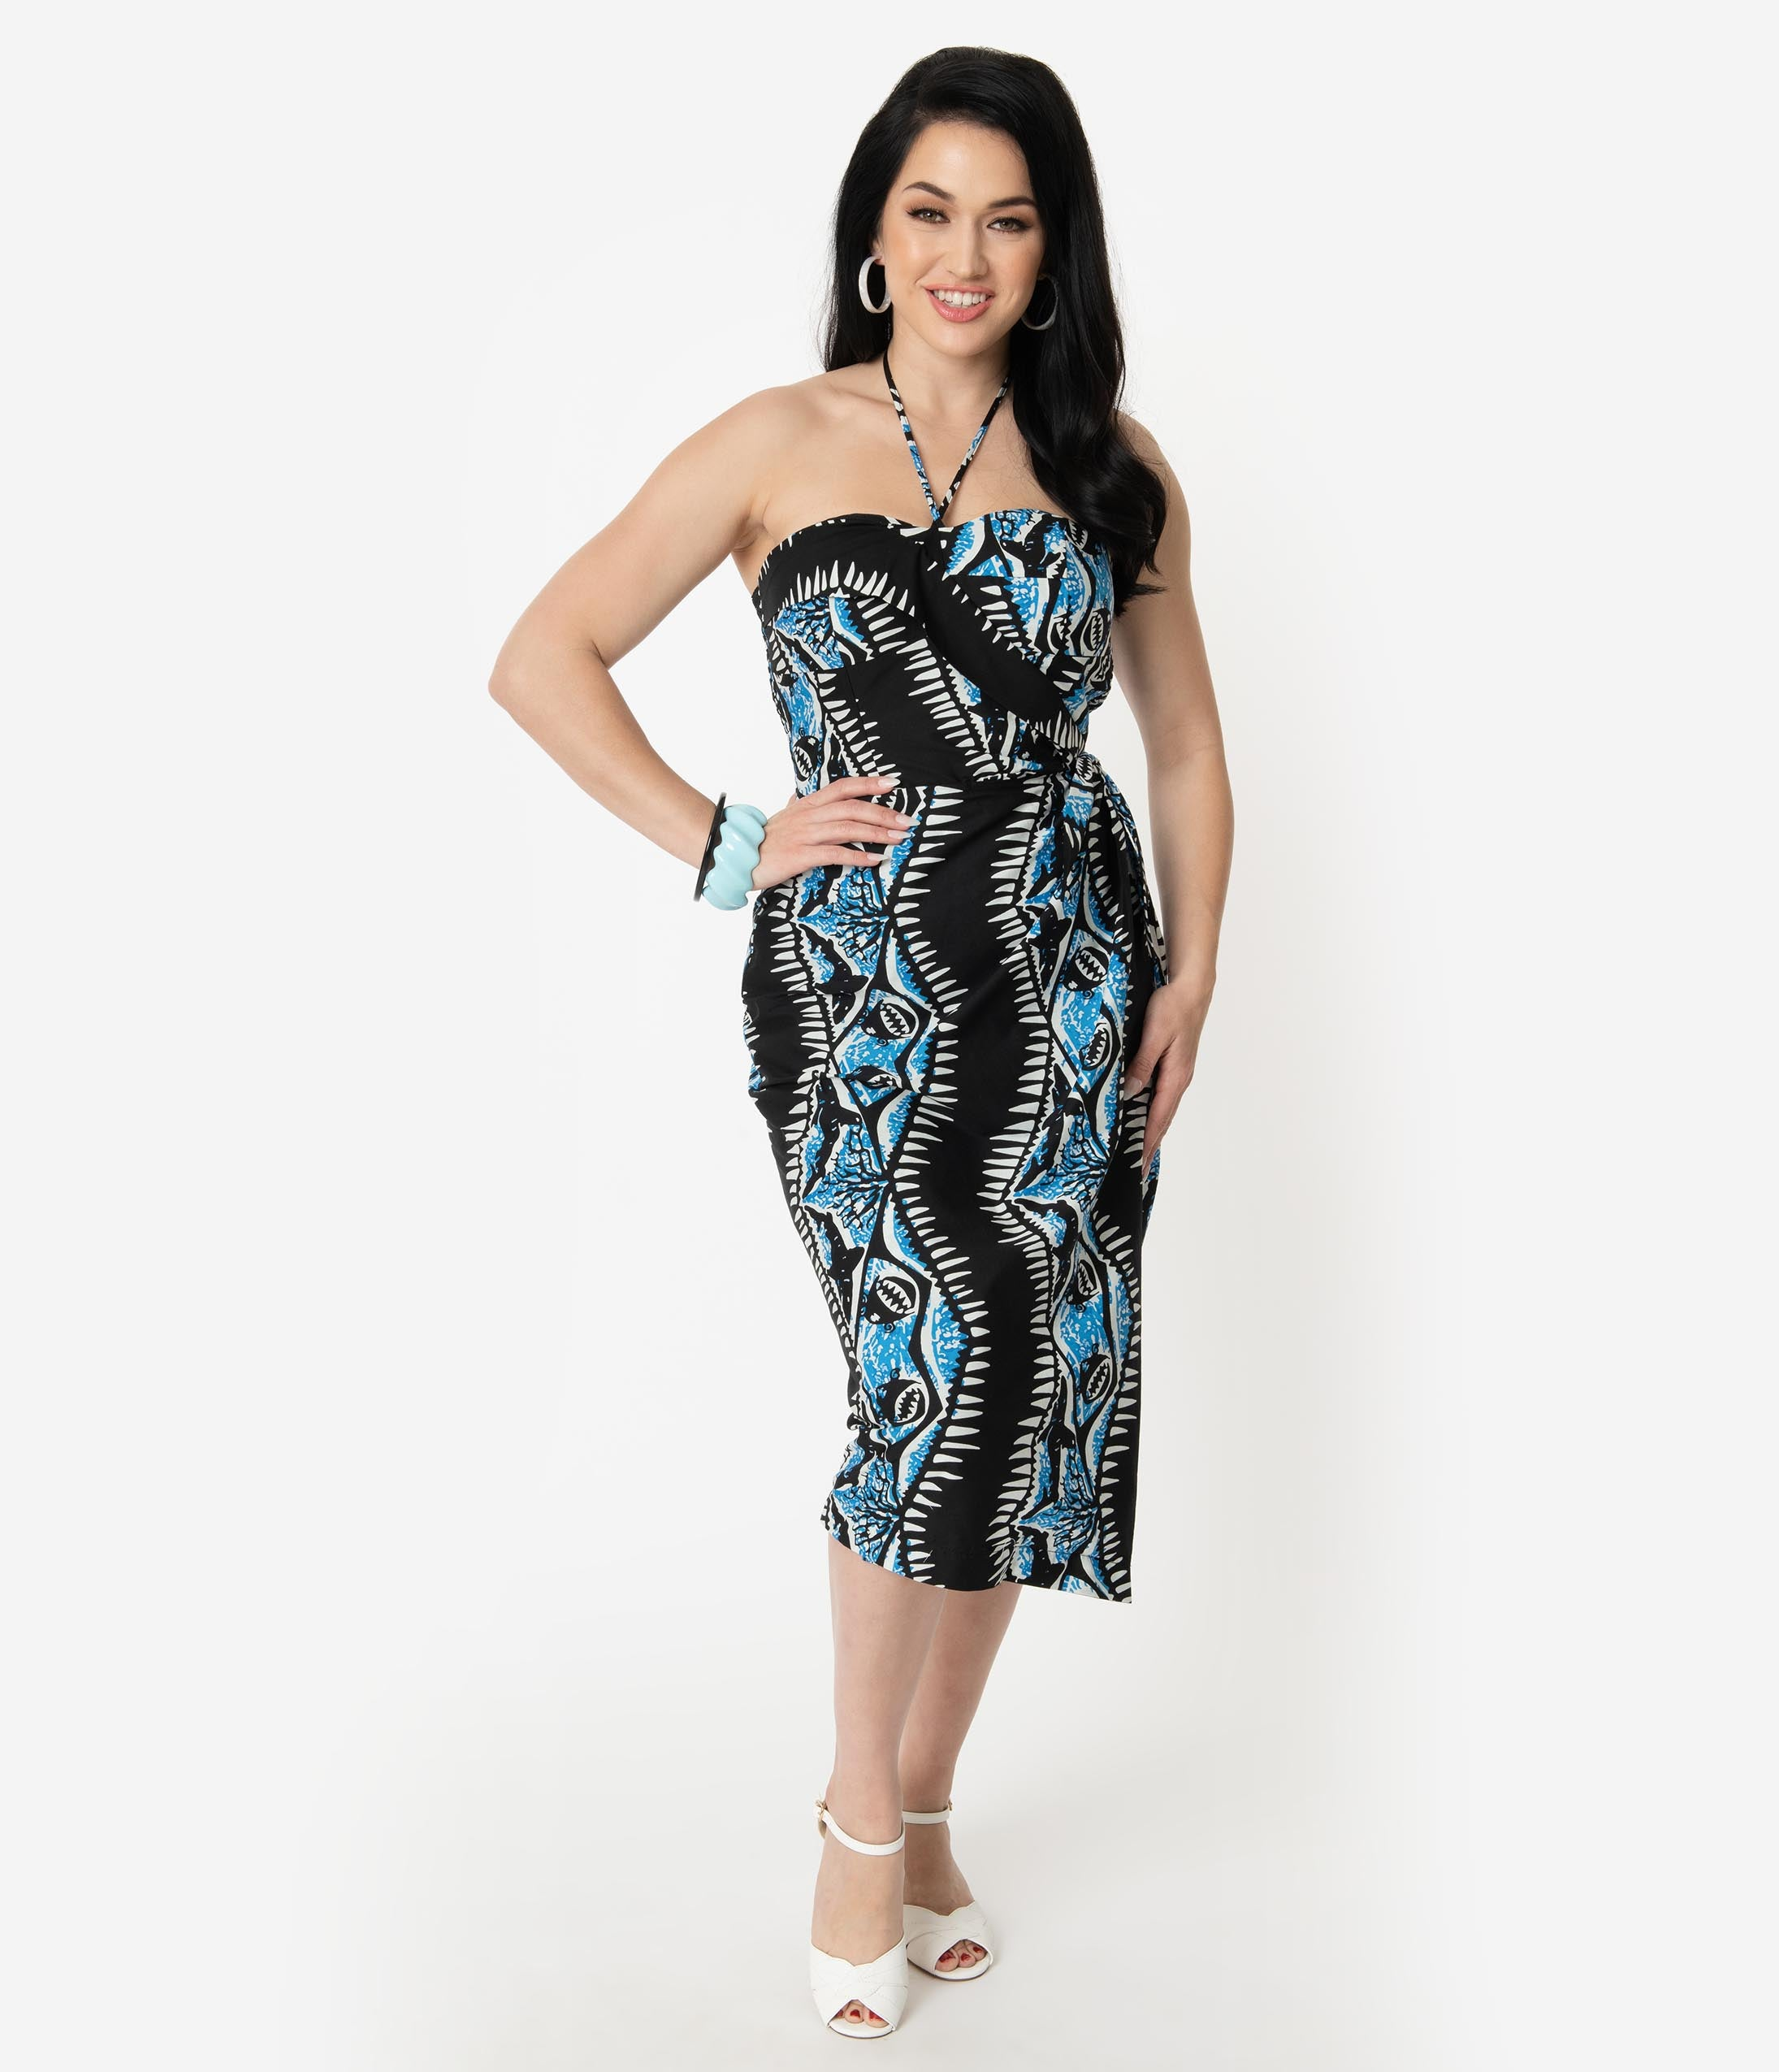 2817921eb Retro Tiki Dress – Tropical, Hawaiian Dresses Alfred Shaheen Black Blue  Shark Print Sarong $118.00